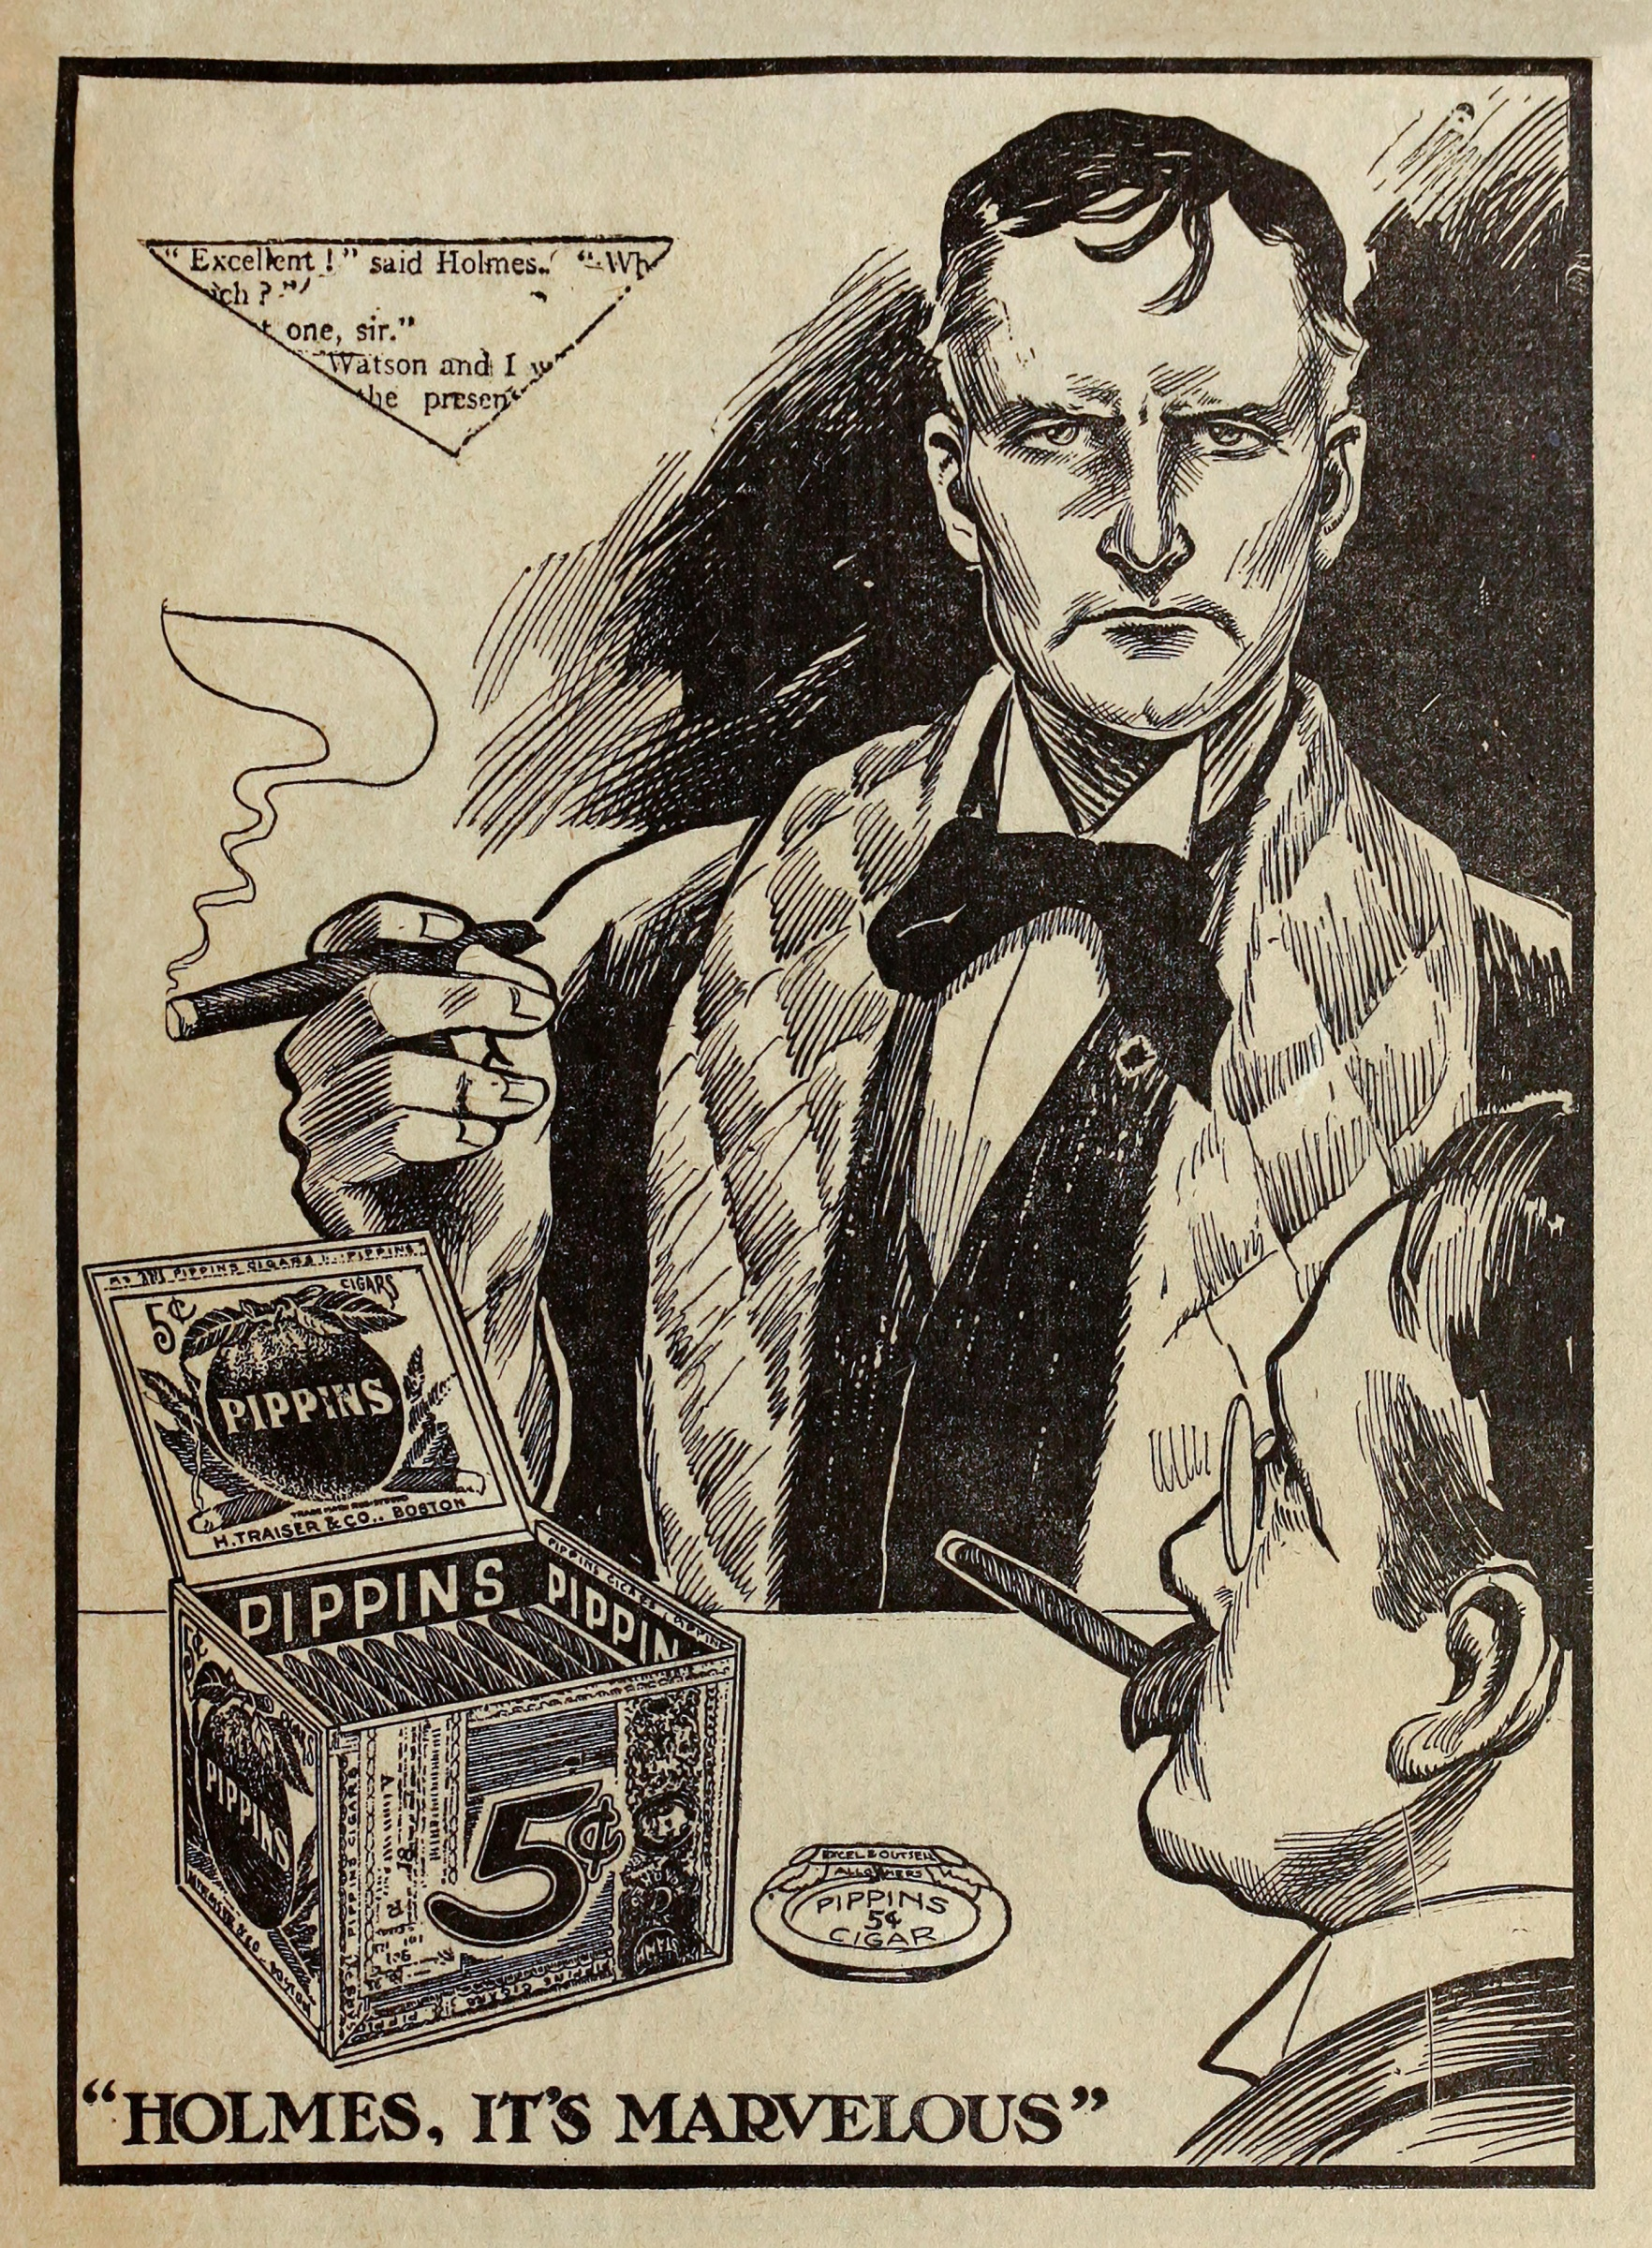 22Holmes2C20its20Marvelous2220Pippins20Cigar20print20advert20featuring20Sherlock20Holmes20and20Dr.20Watson2C201911-a8698a1